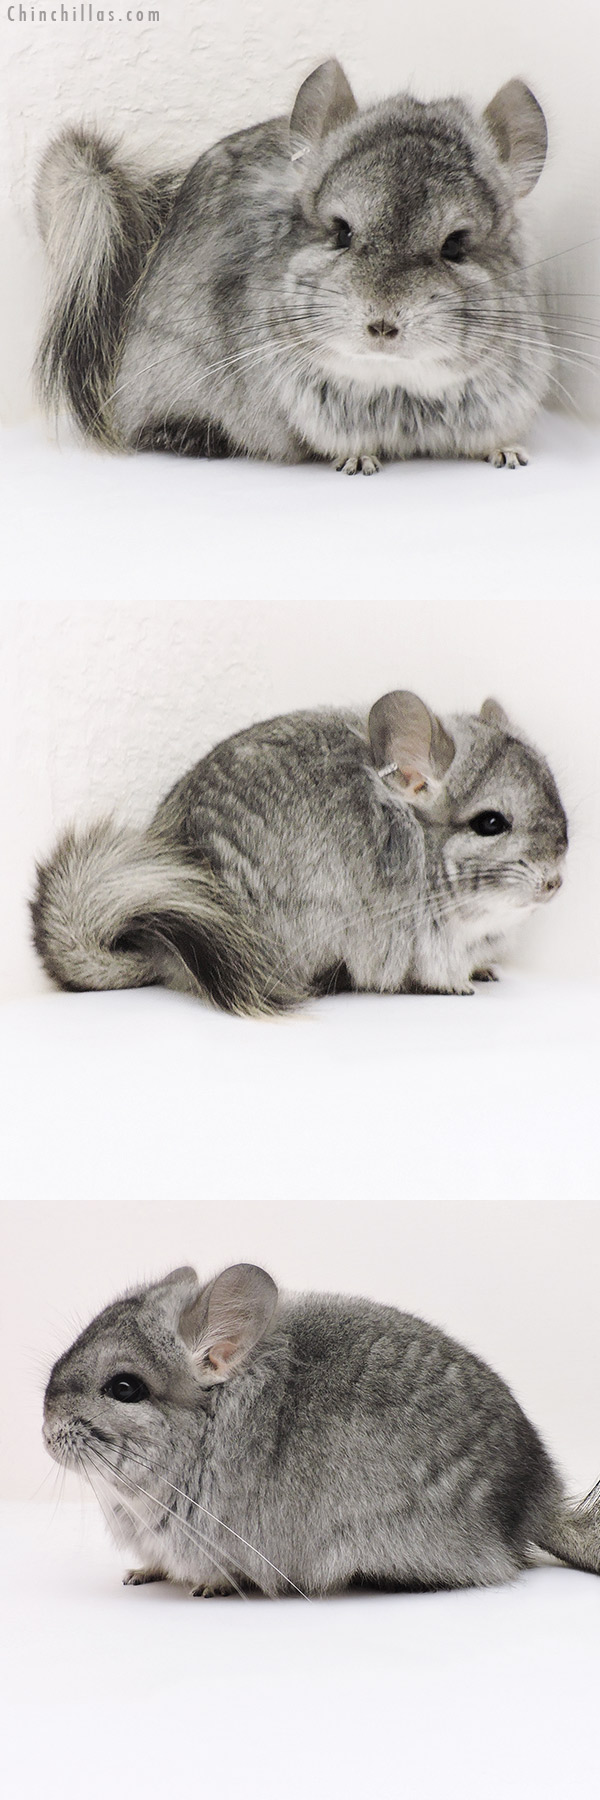 17141 Standard CCCU Royal Persian Angora Male with Lion Mane Chinchilla